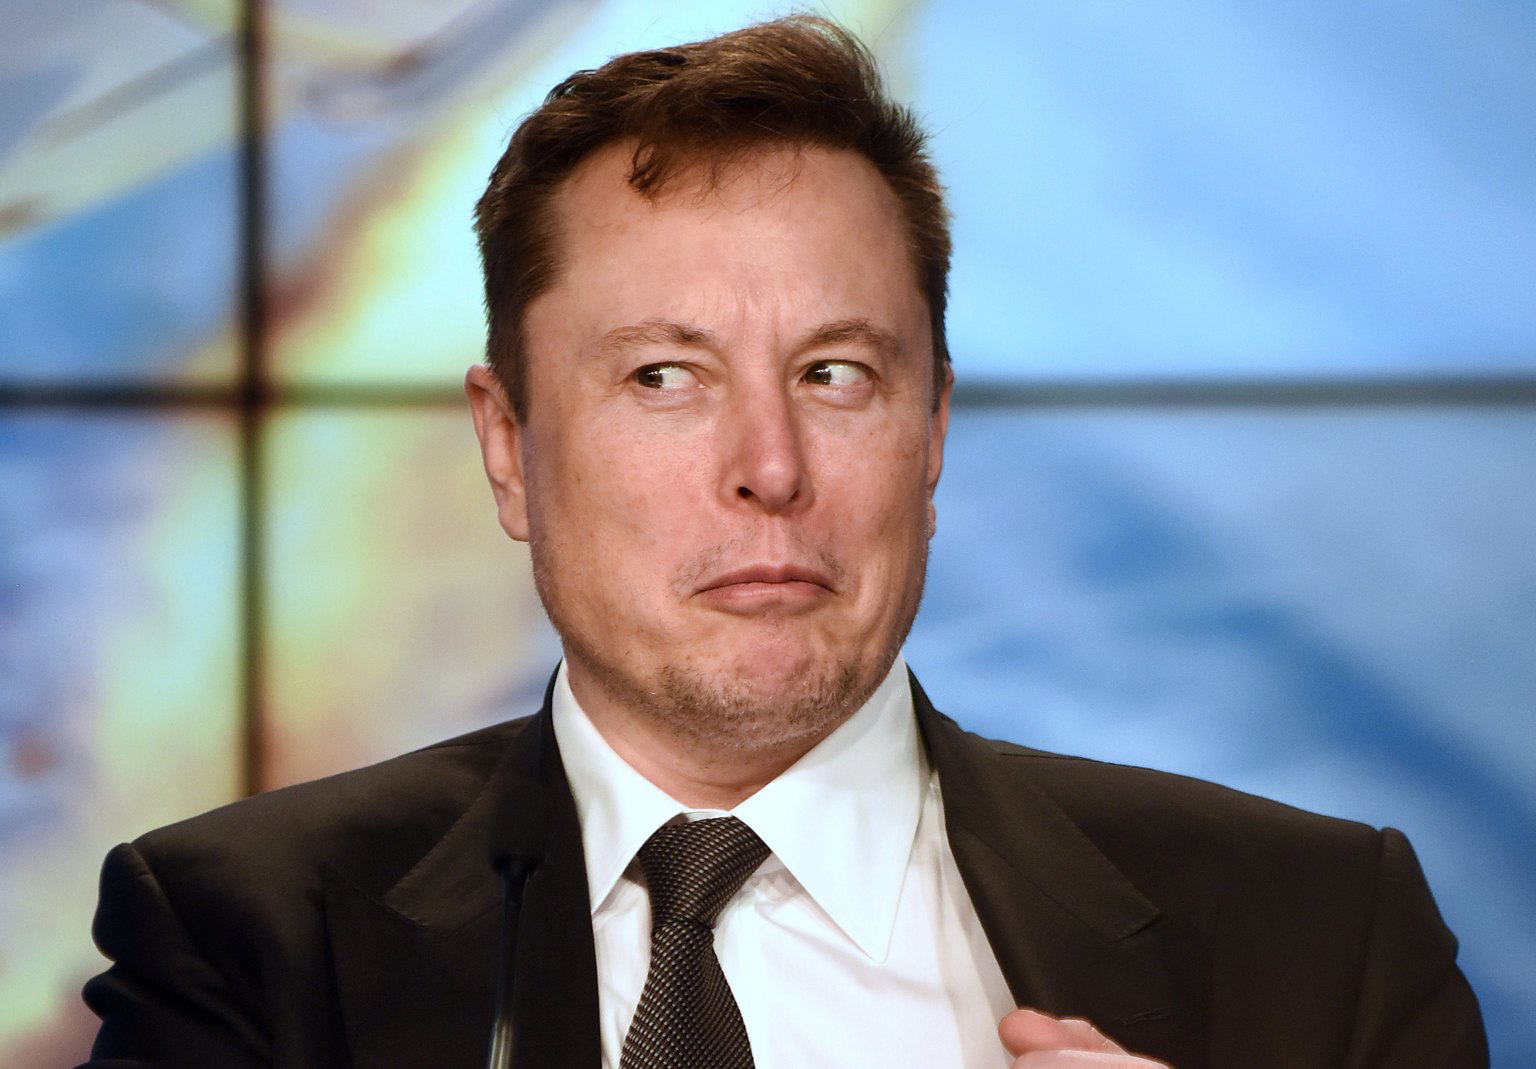 tesla stock is there a forming of a new bubble